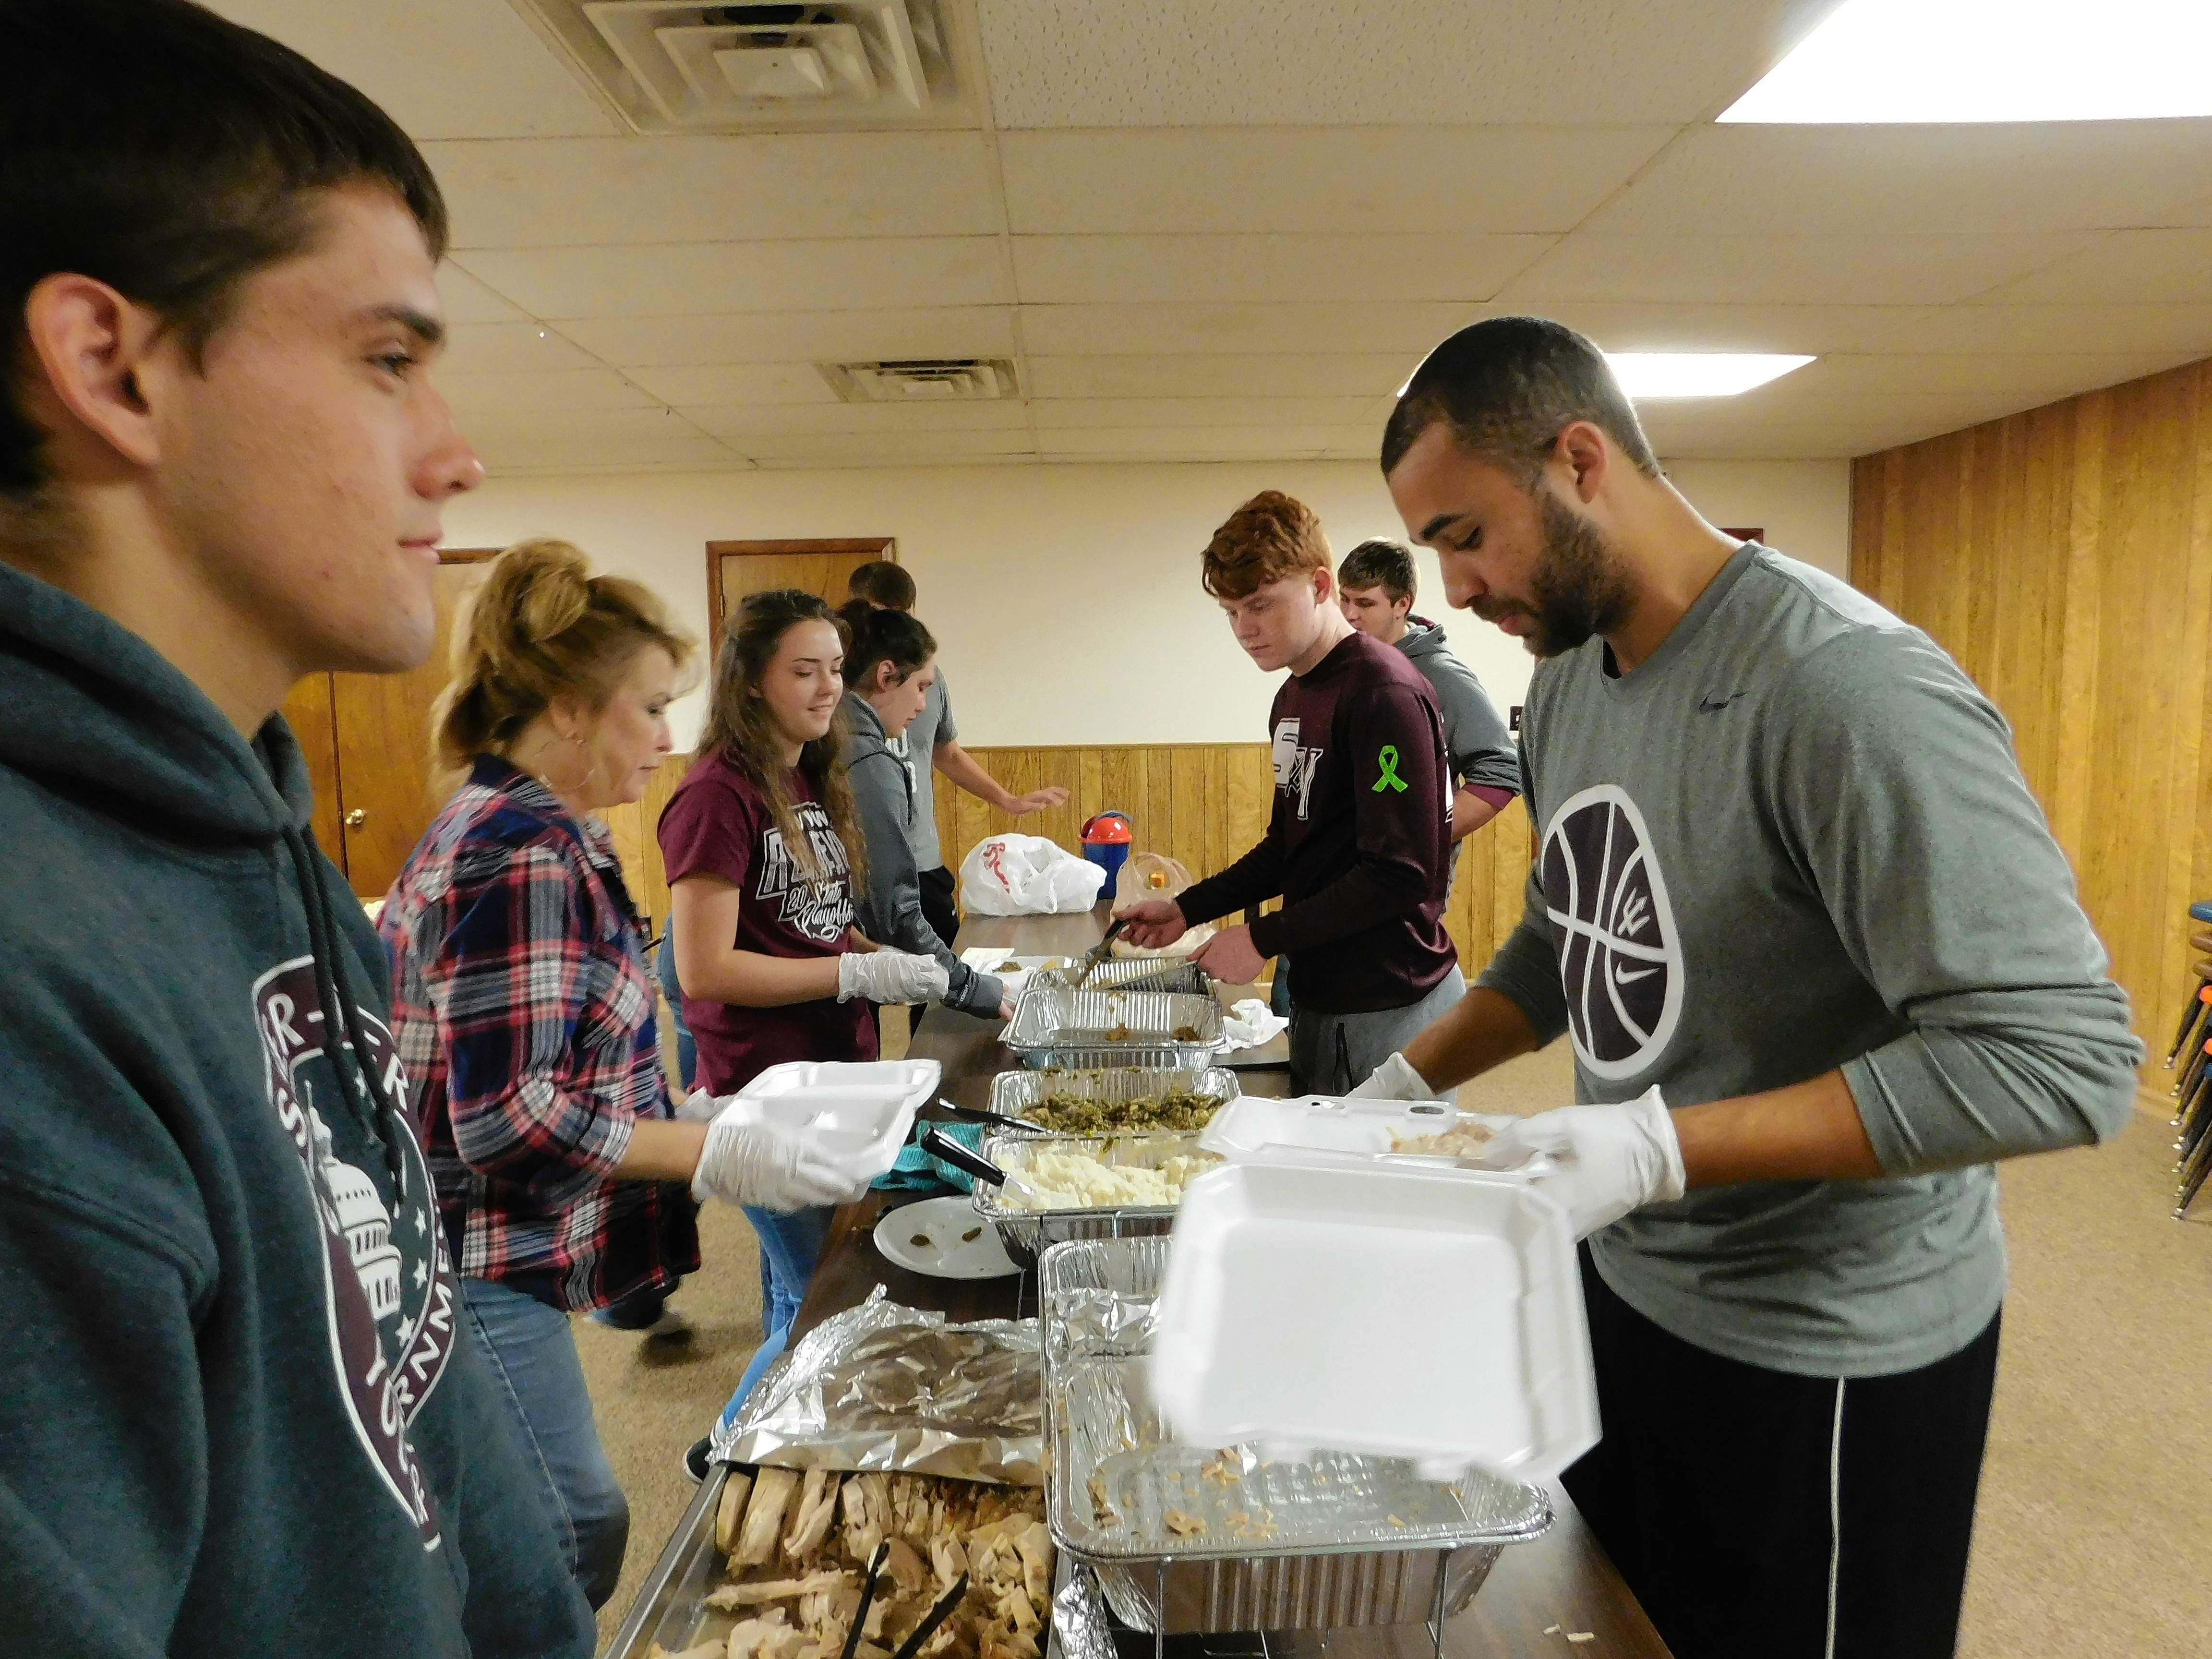 """Volunteers from the Sesser Youth Program help to prepare meals for delivery during last week's Thanksgiving dinner at 5 Loaves Café. """"They are a huge help,"""" said Ashley Boker, one of the organizers of the event."""